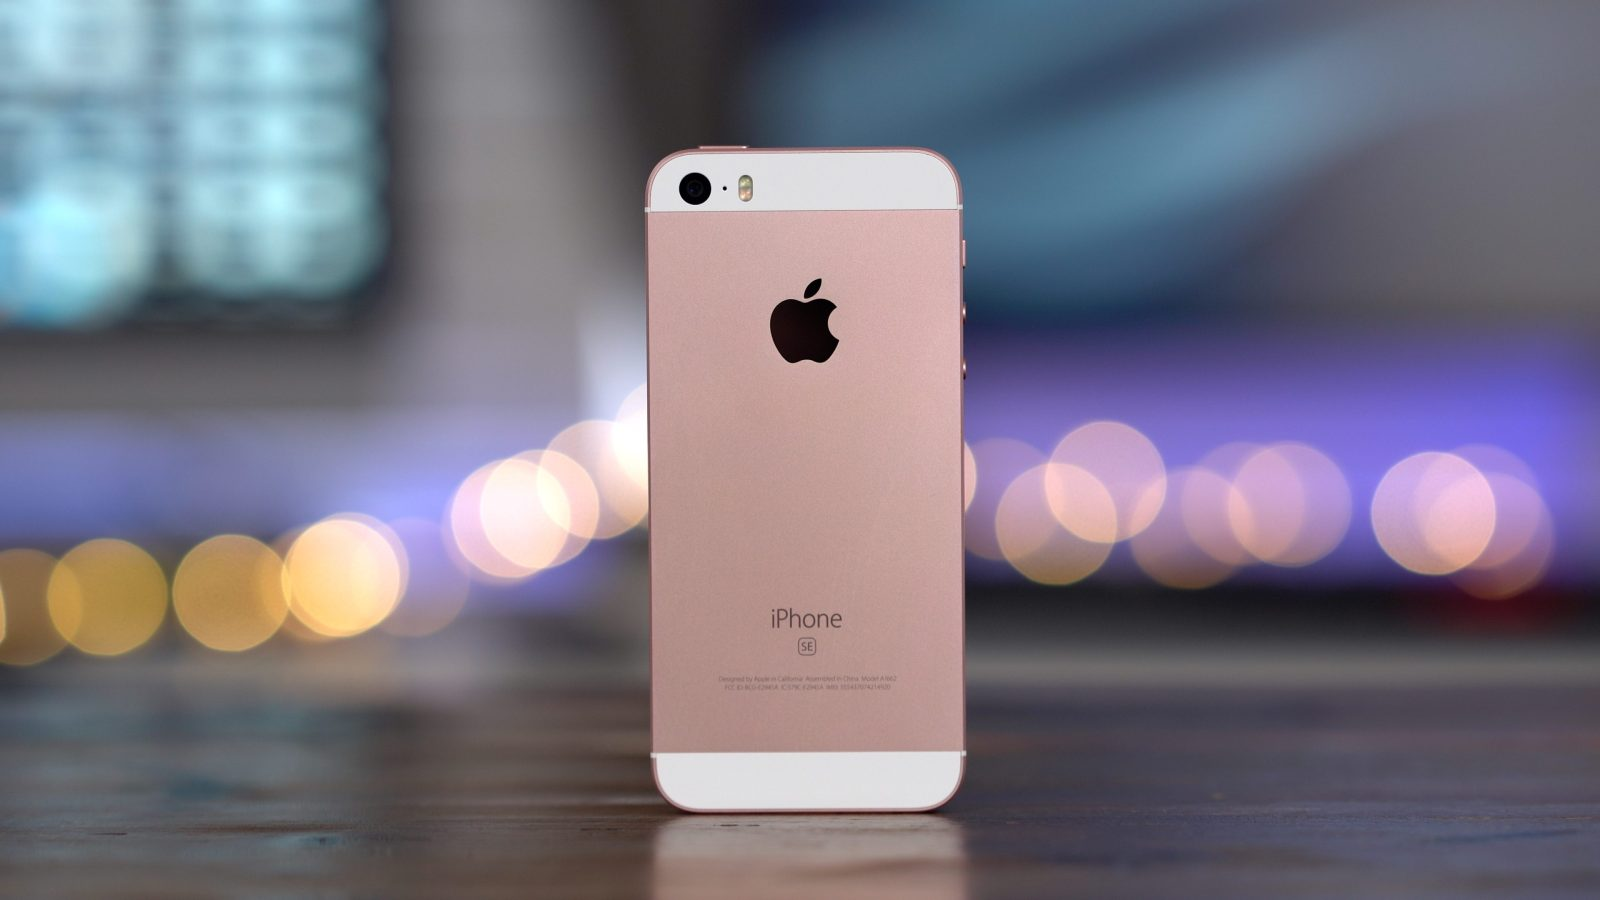 Apple Clearance has the iPhone SE back in stock for $249